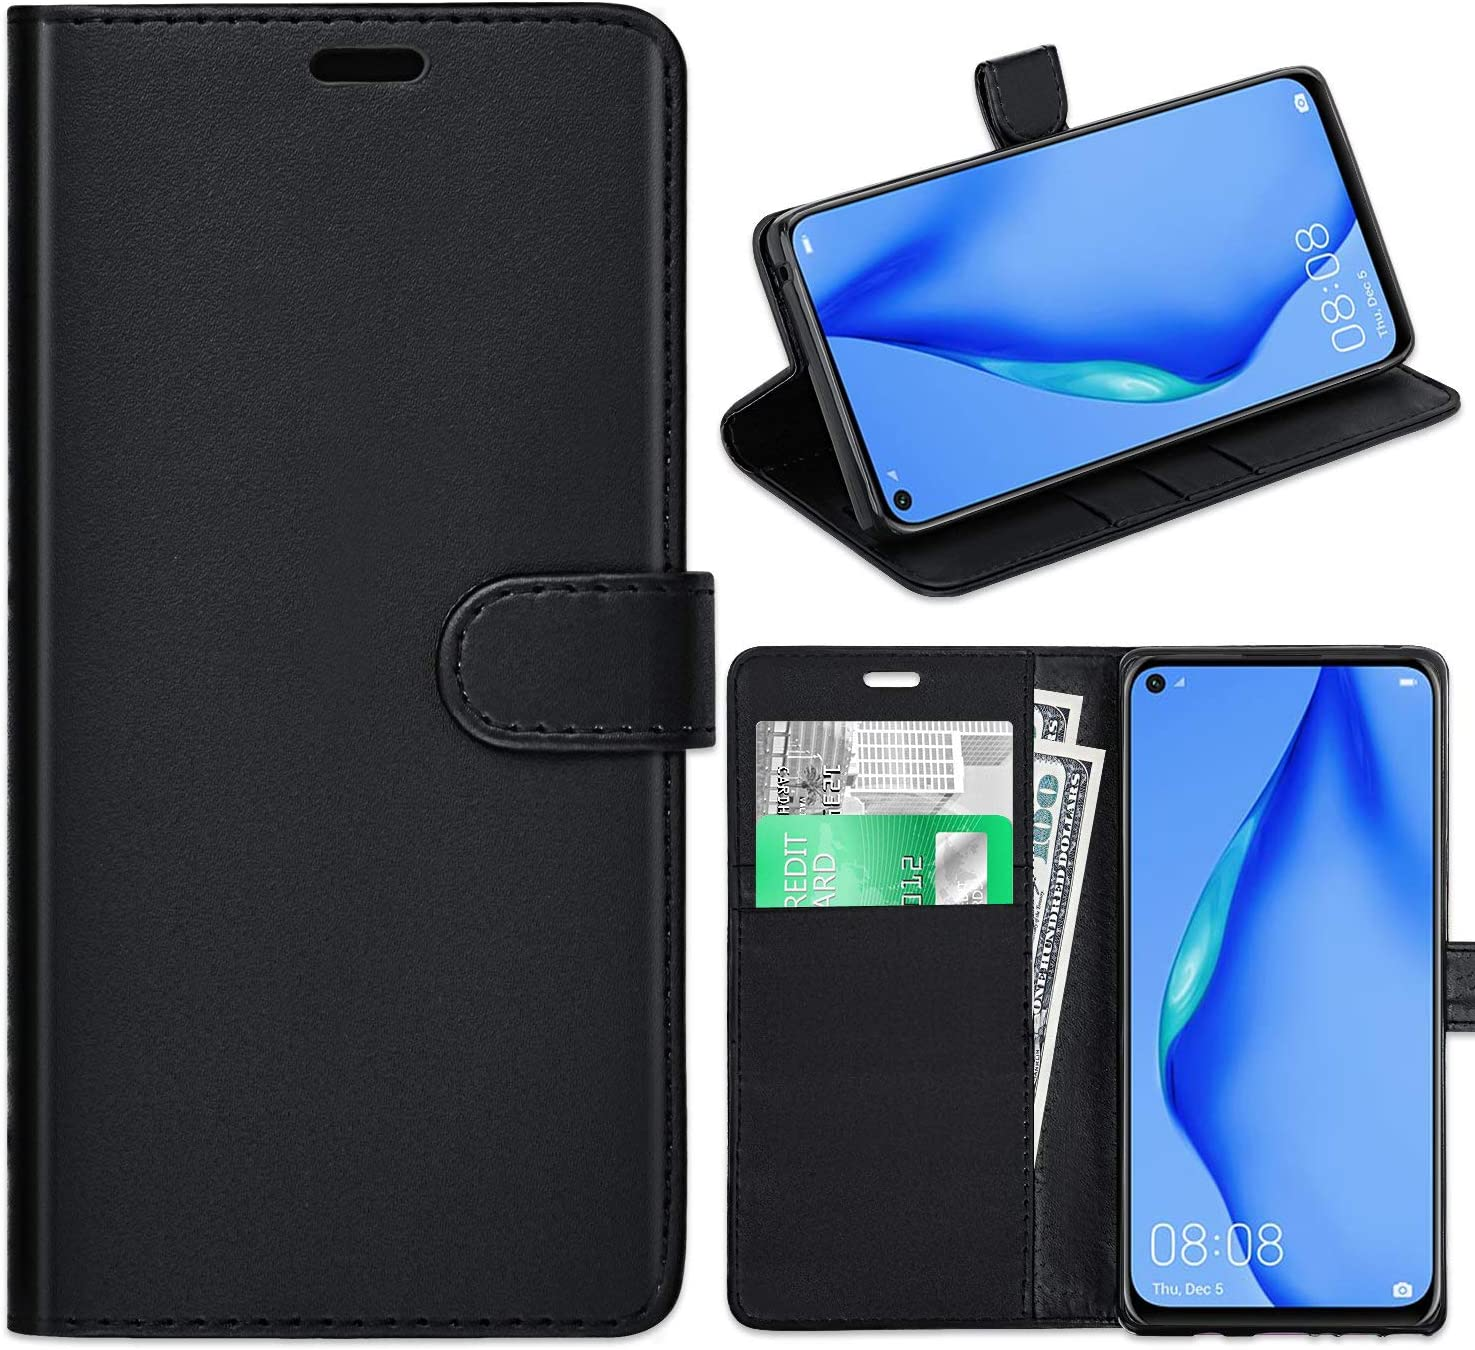 Book Wallet Case Phone Case Phone Cover for Huawei P40 Magnetic Flip Wallet Case for Huawei P40 Credit Card Holder Black AROYI Huawei P40 Case PU Leather Protection Stand Function